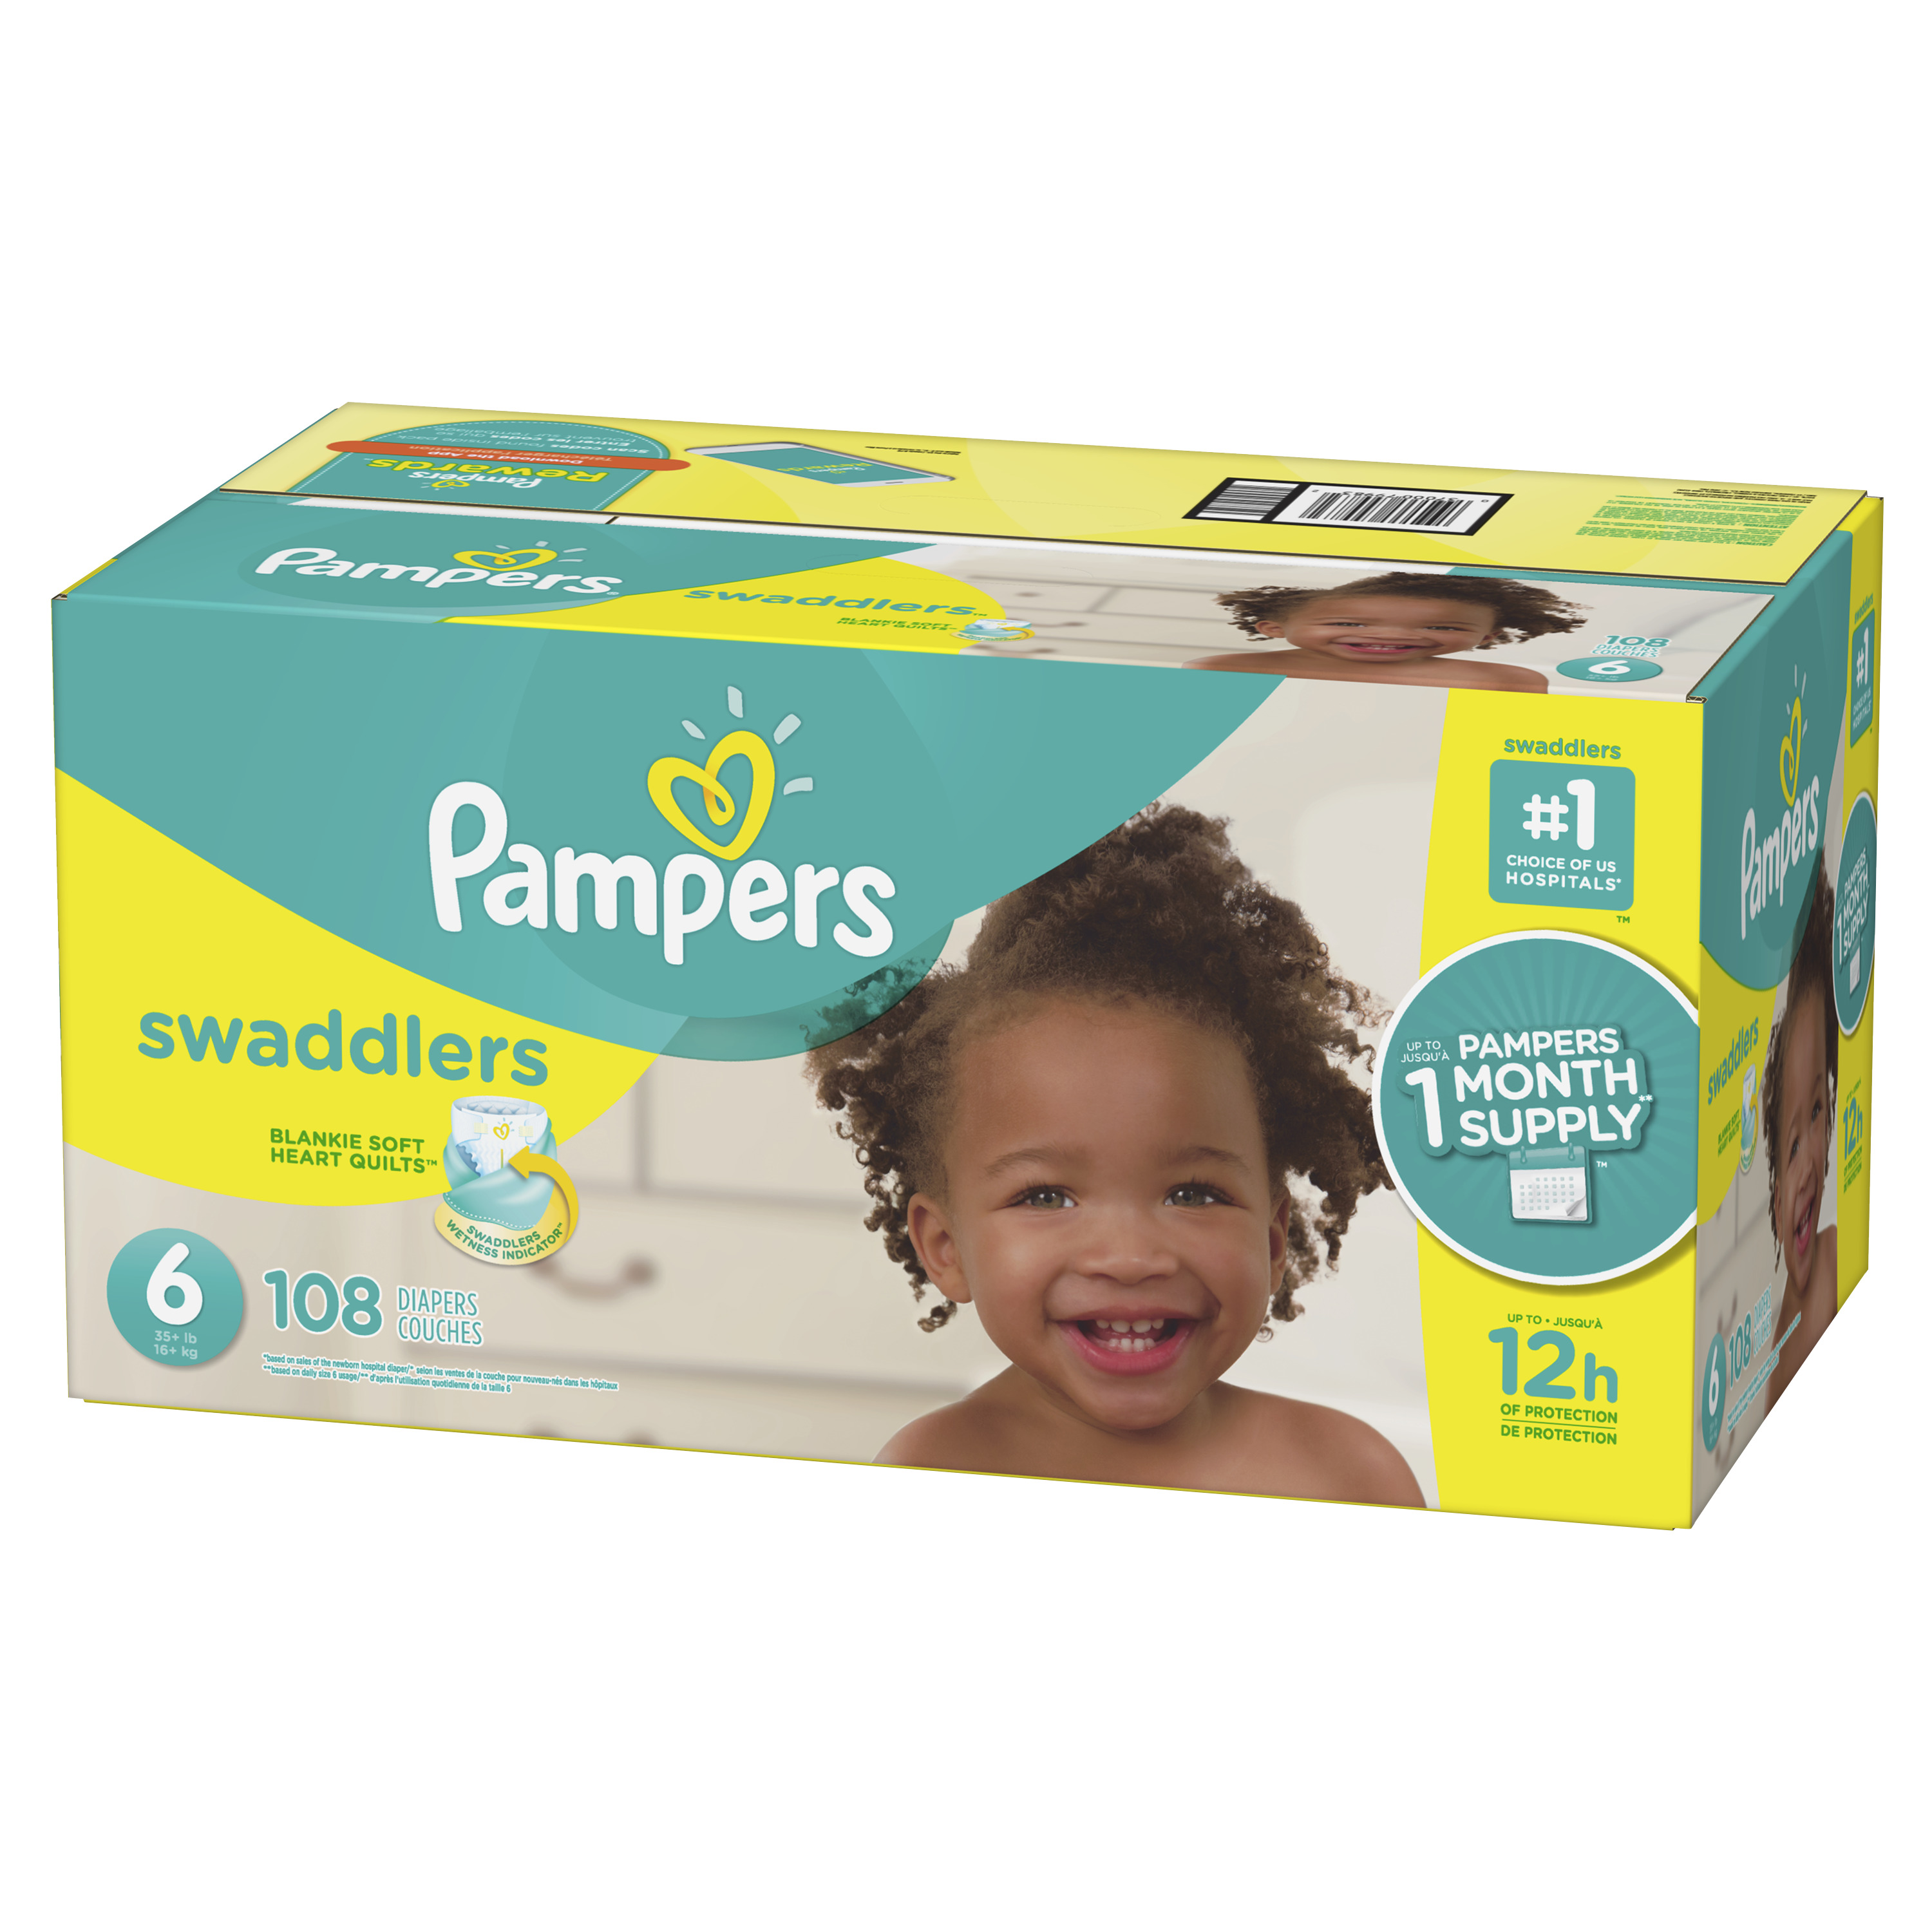 Pampers Swaddlers Diapers Size 6 108 Count